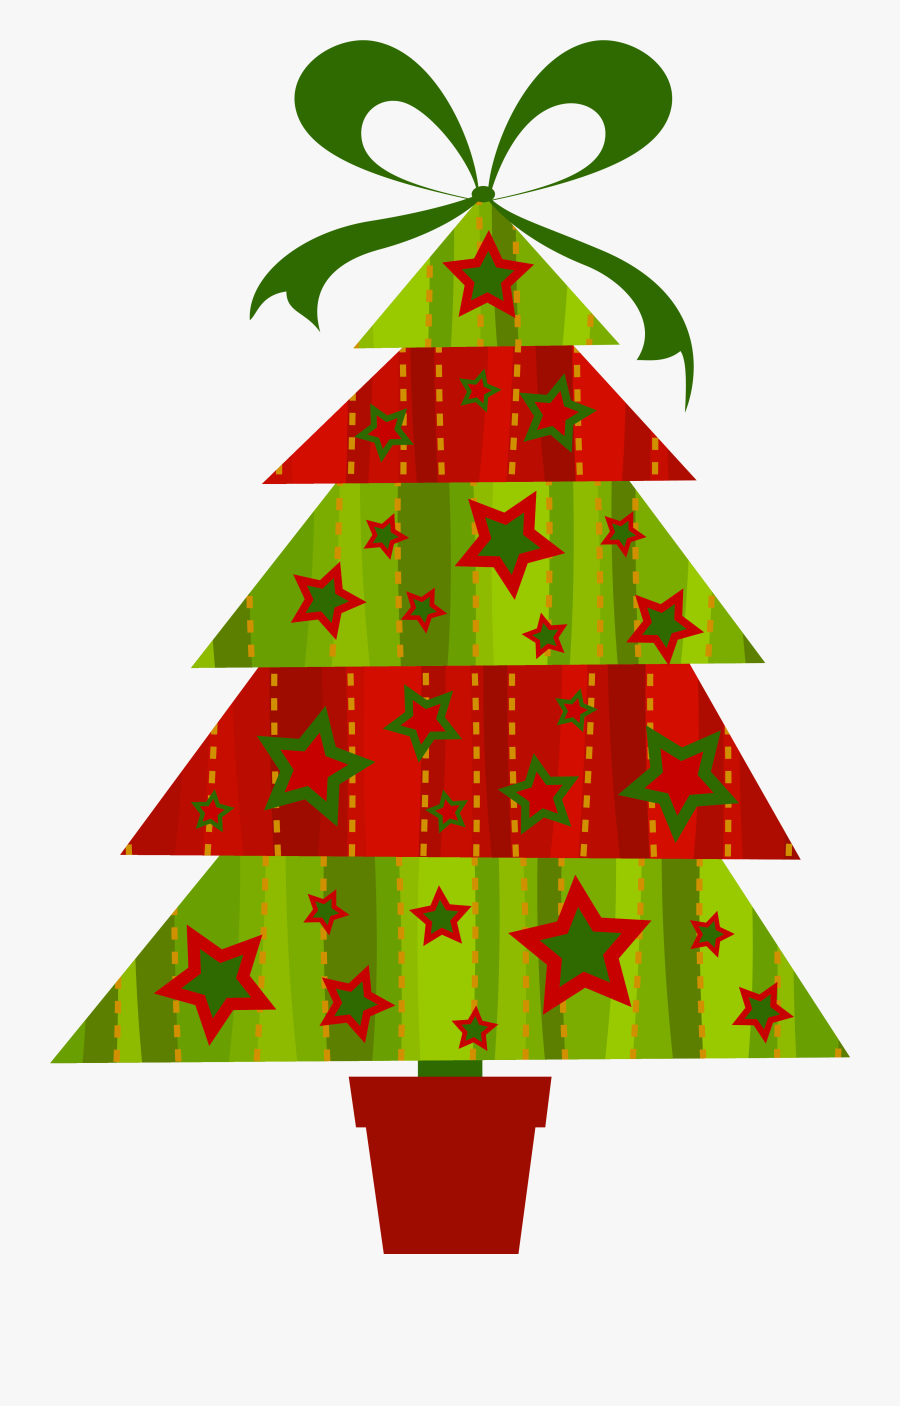 Free Christmas Tree Clipart Public Domain Christmas - Contemporary Christmas Tree Graphic, Transparent Clipart